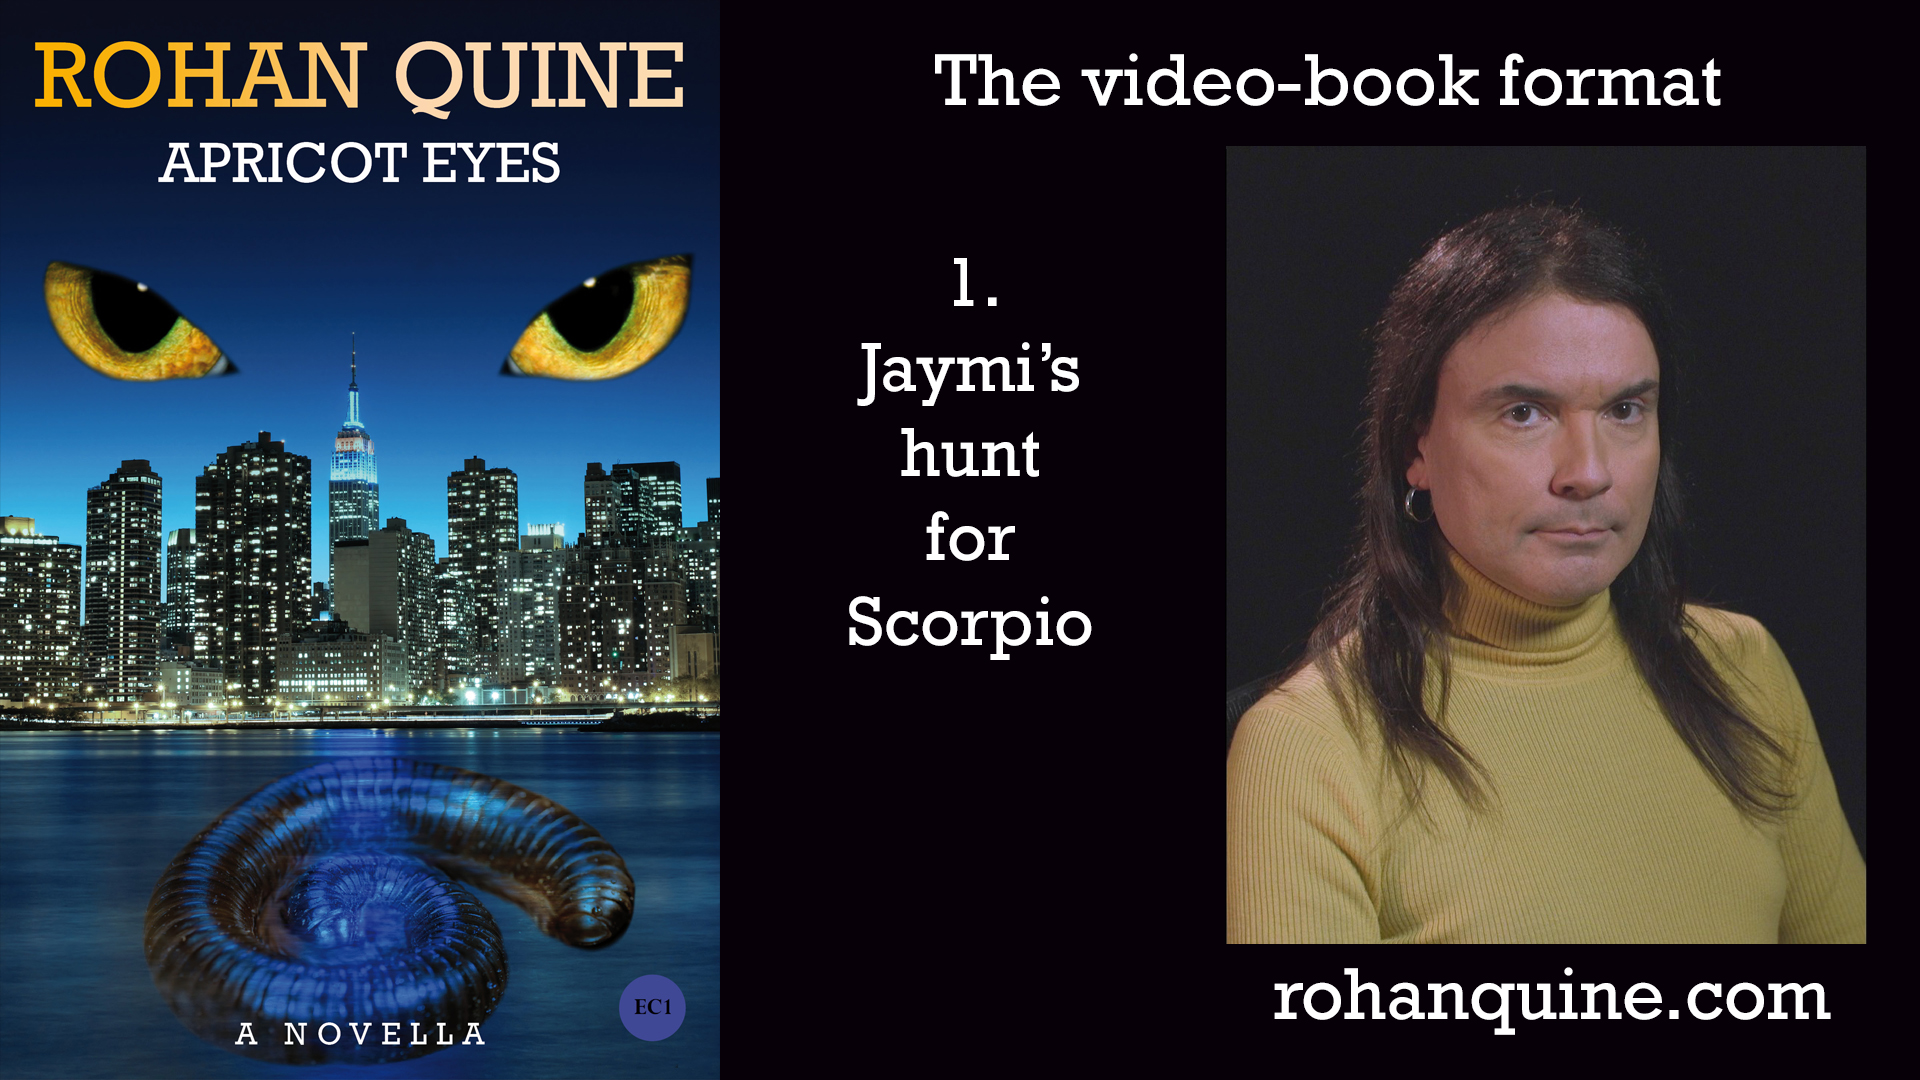 APRICOT EYES by Rohan Quine - video-book format - chapter 1